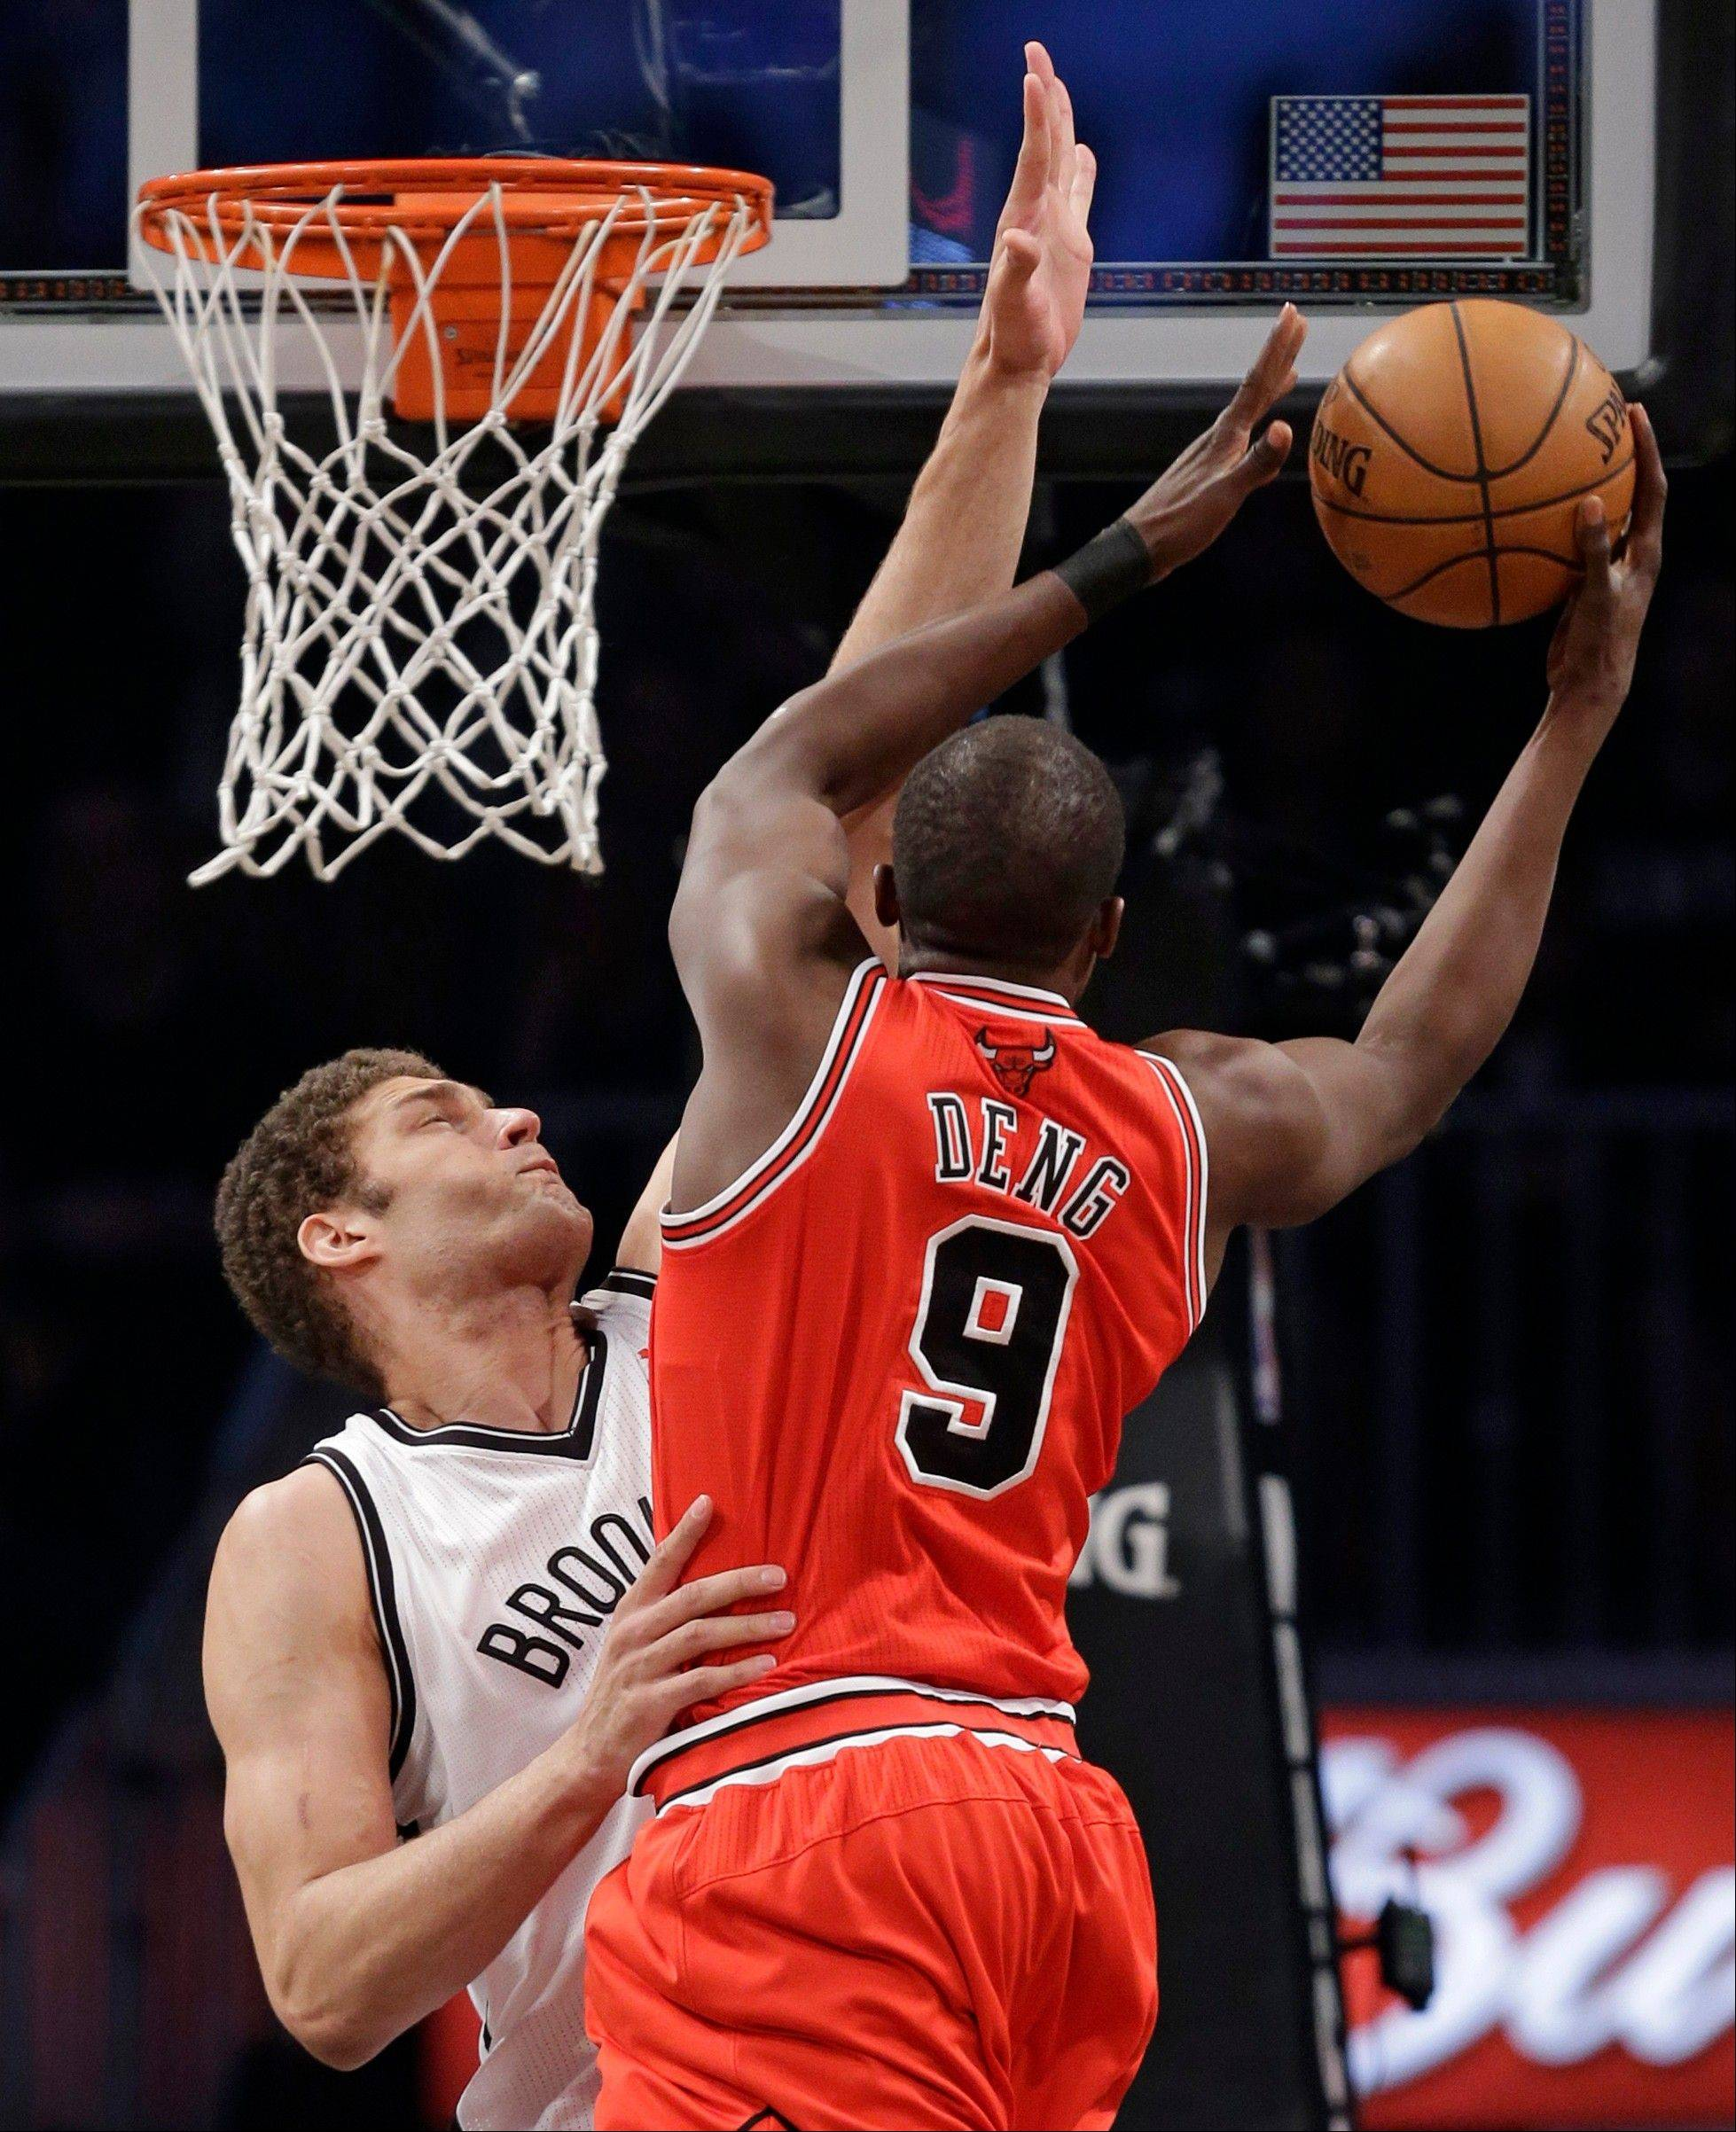 Brooklyn Nets center Brook Lopez defends as Bulls forward Luol Deng goes up for a layup Monday in the first half of Game 2 of their first-round NBA basketball playoff series in New York.